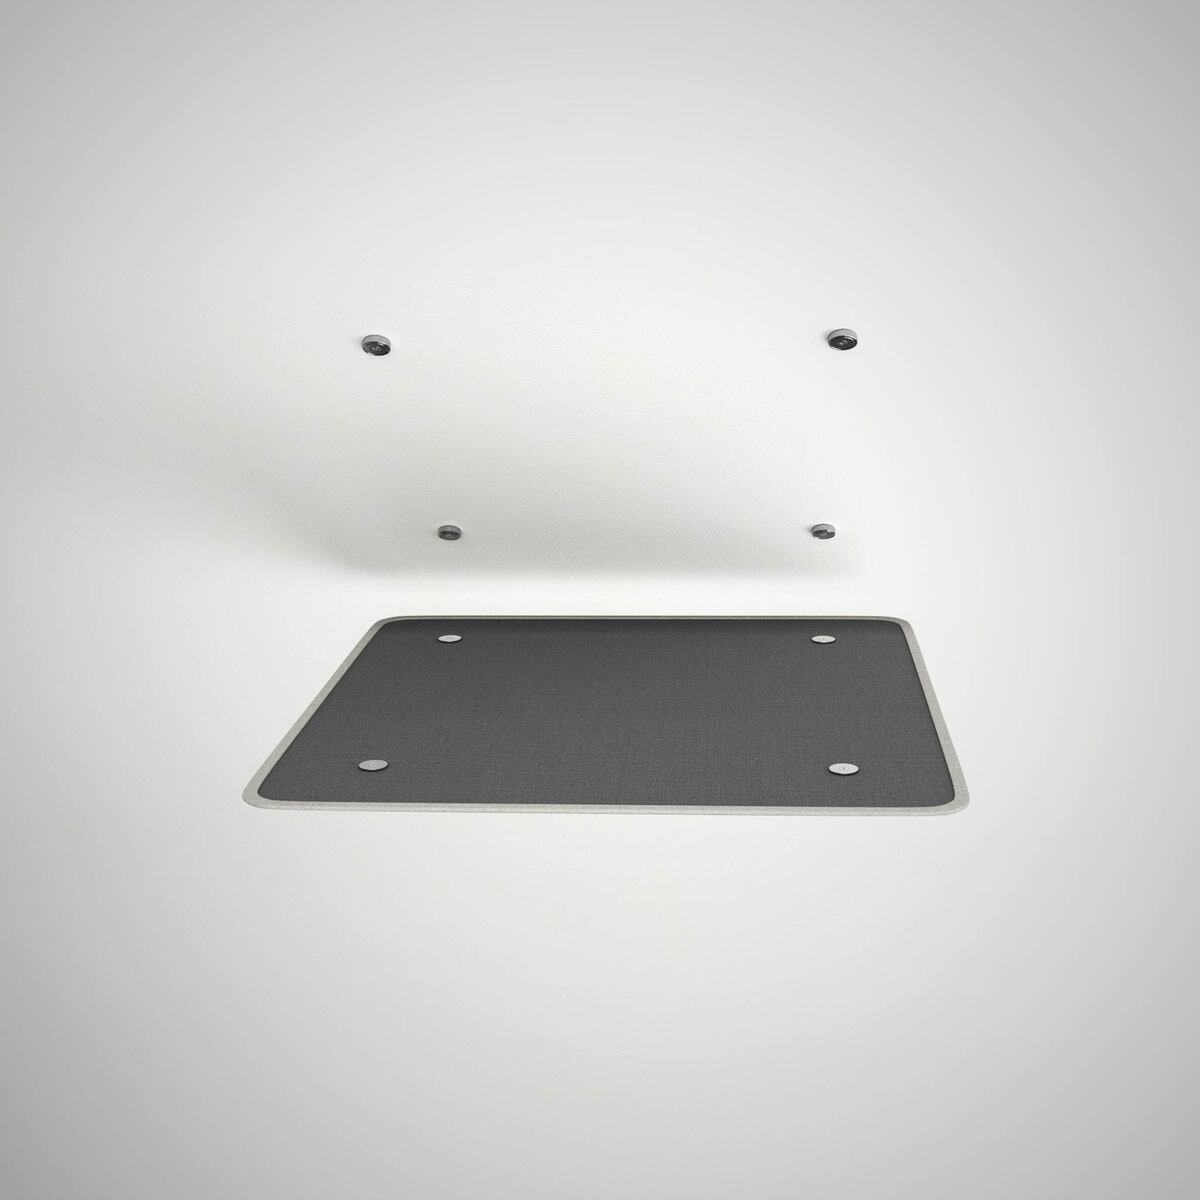 Ceiling adherence system with magnets.